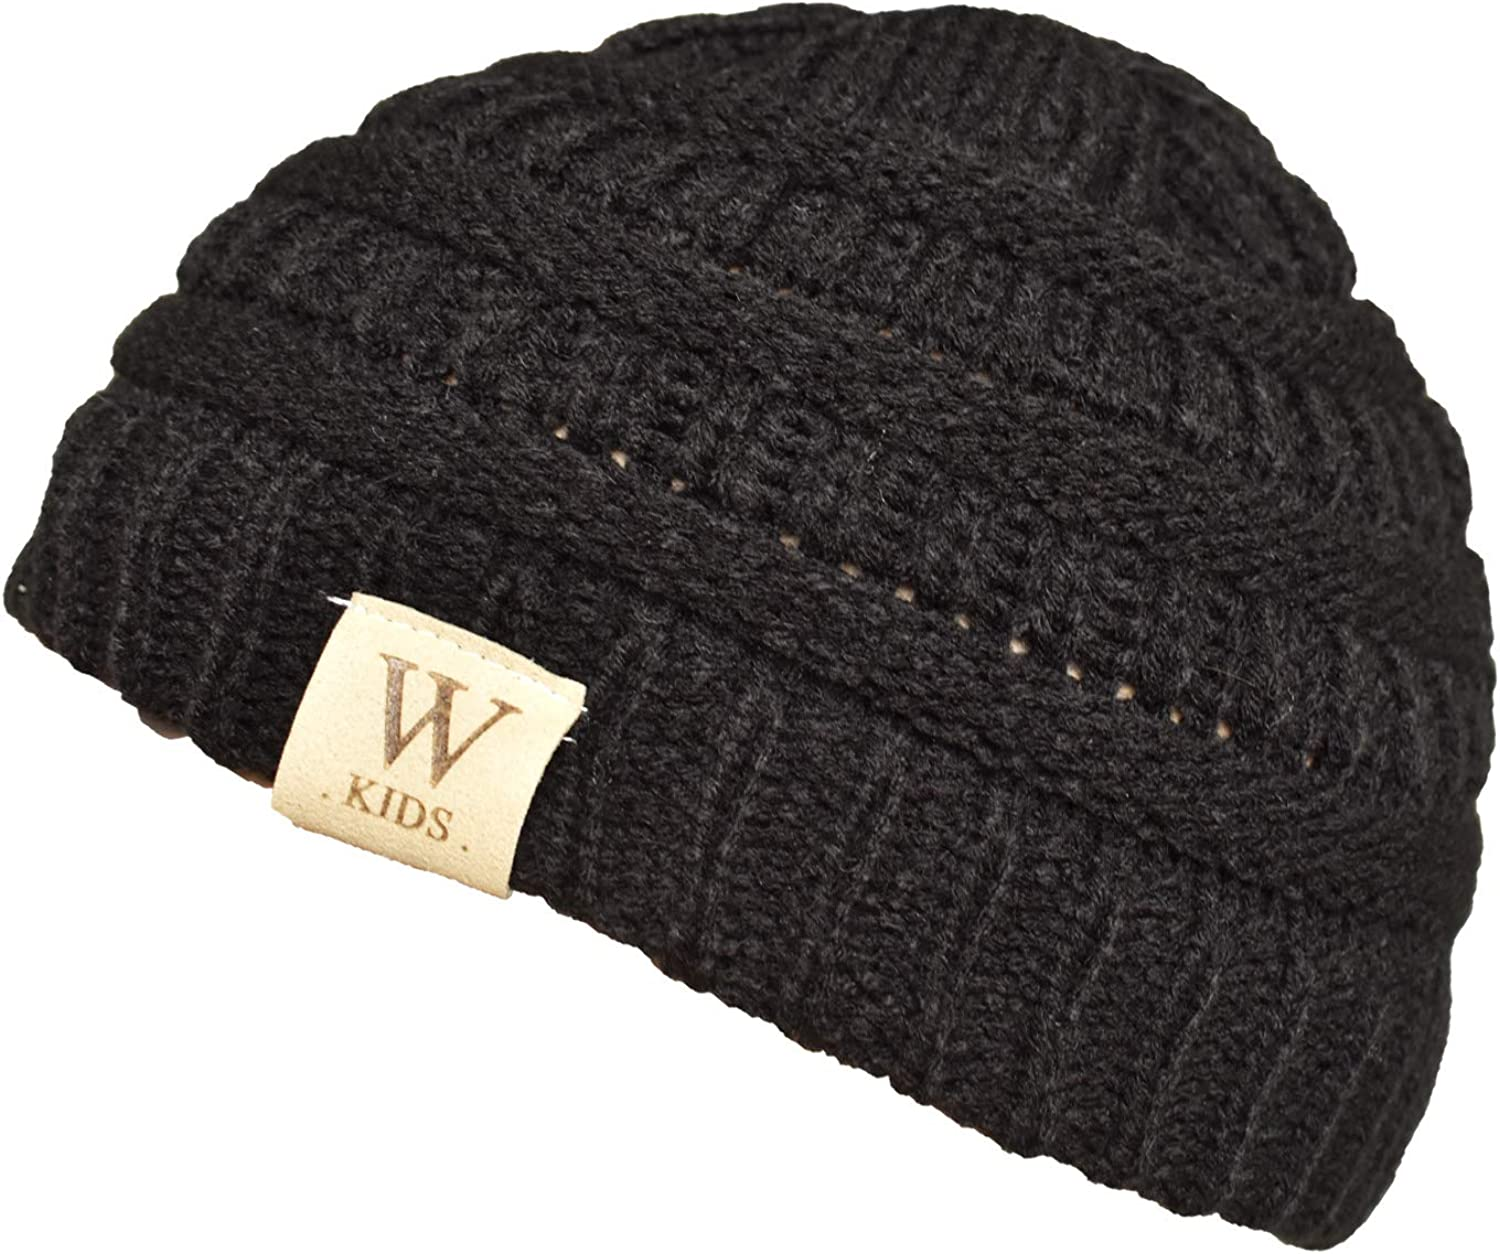 WONBURY Kids Winter Beanie Hats Caps for Children Soft Warm Cute Chunky Thick Stretchy Knitted